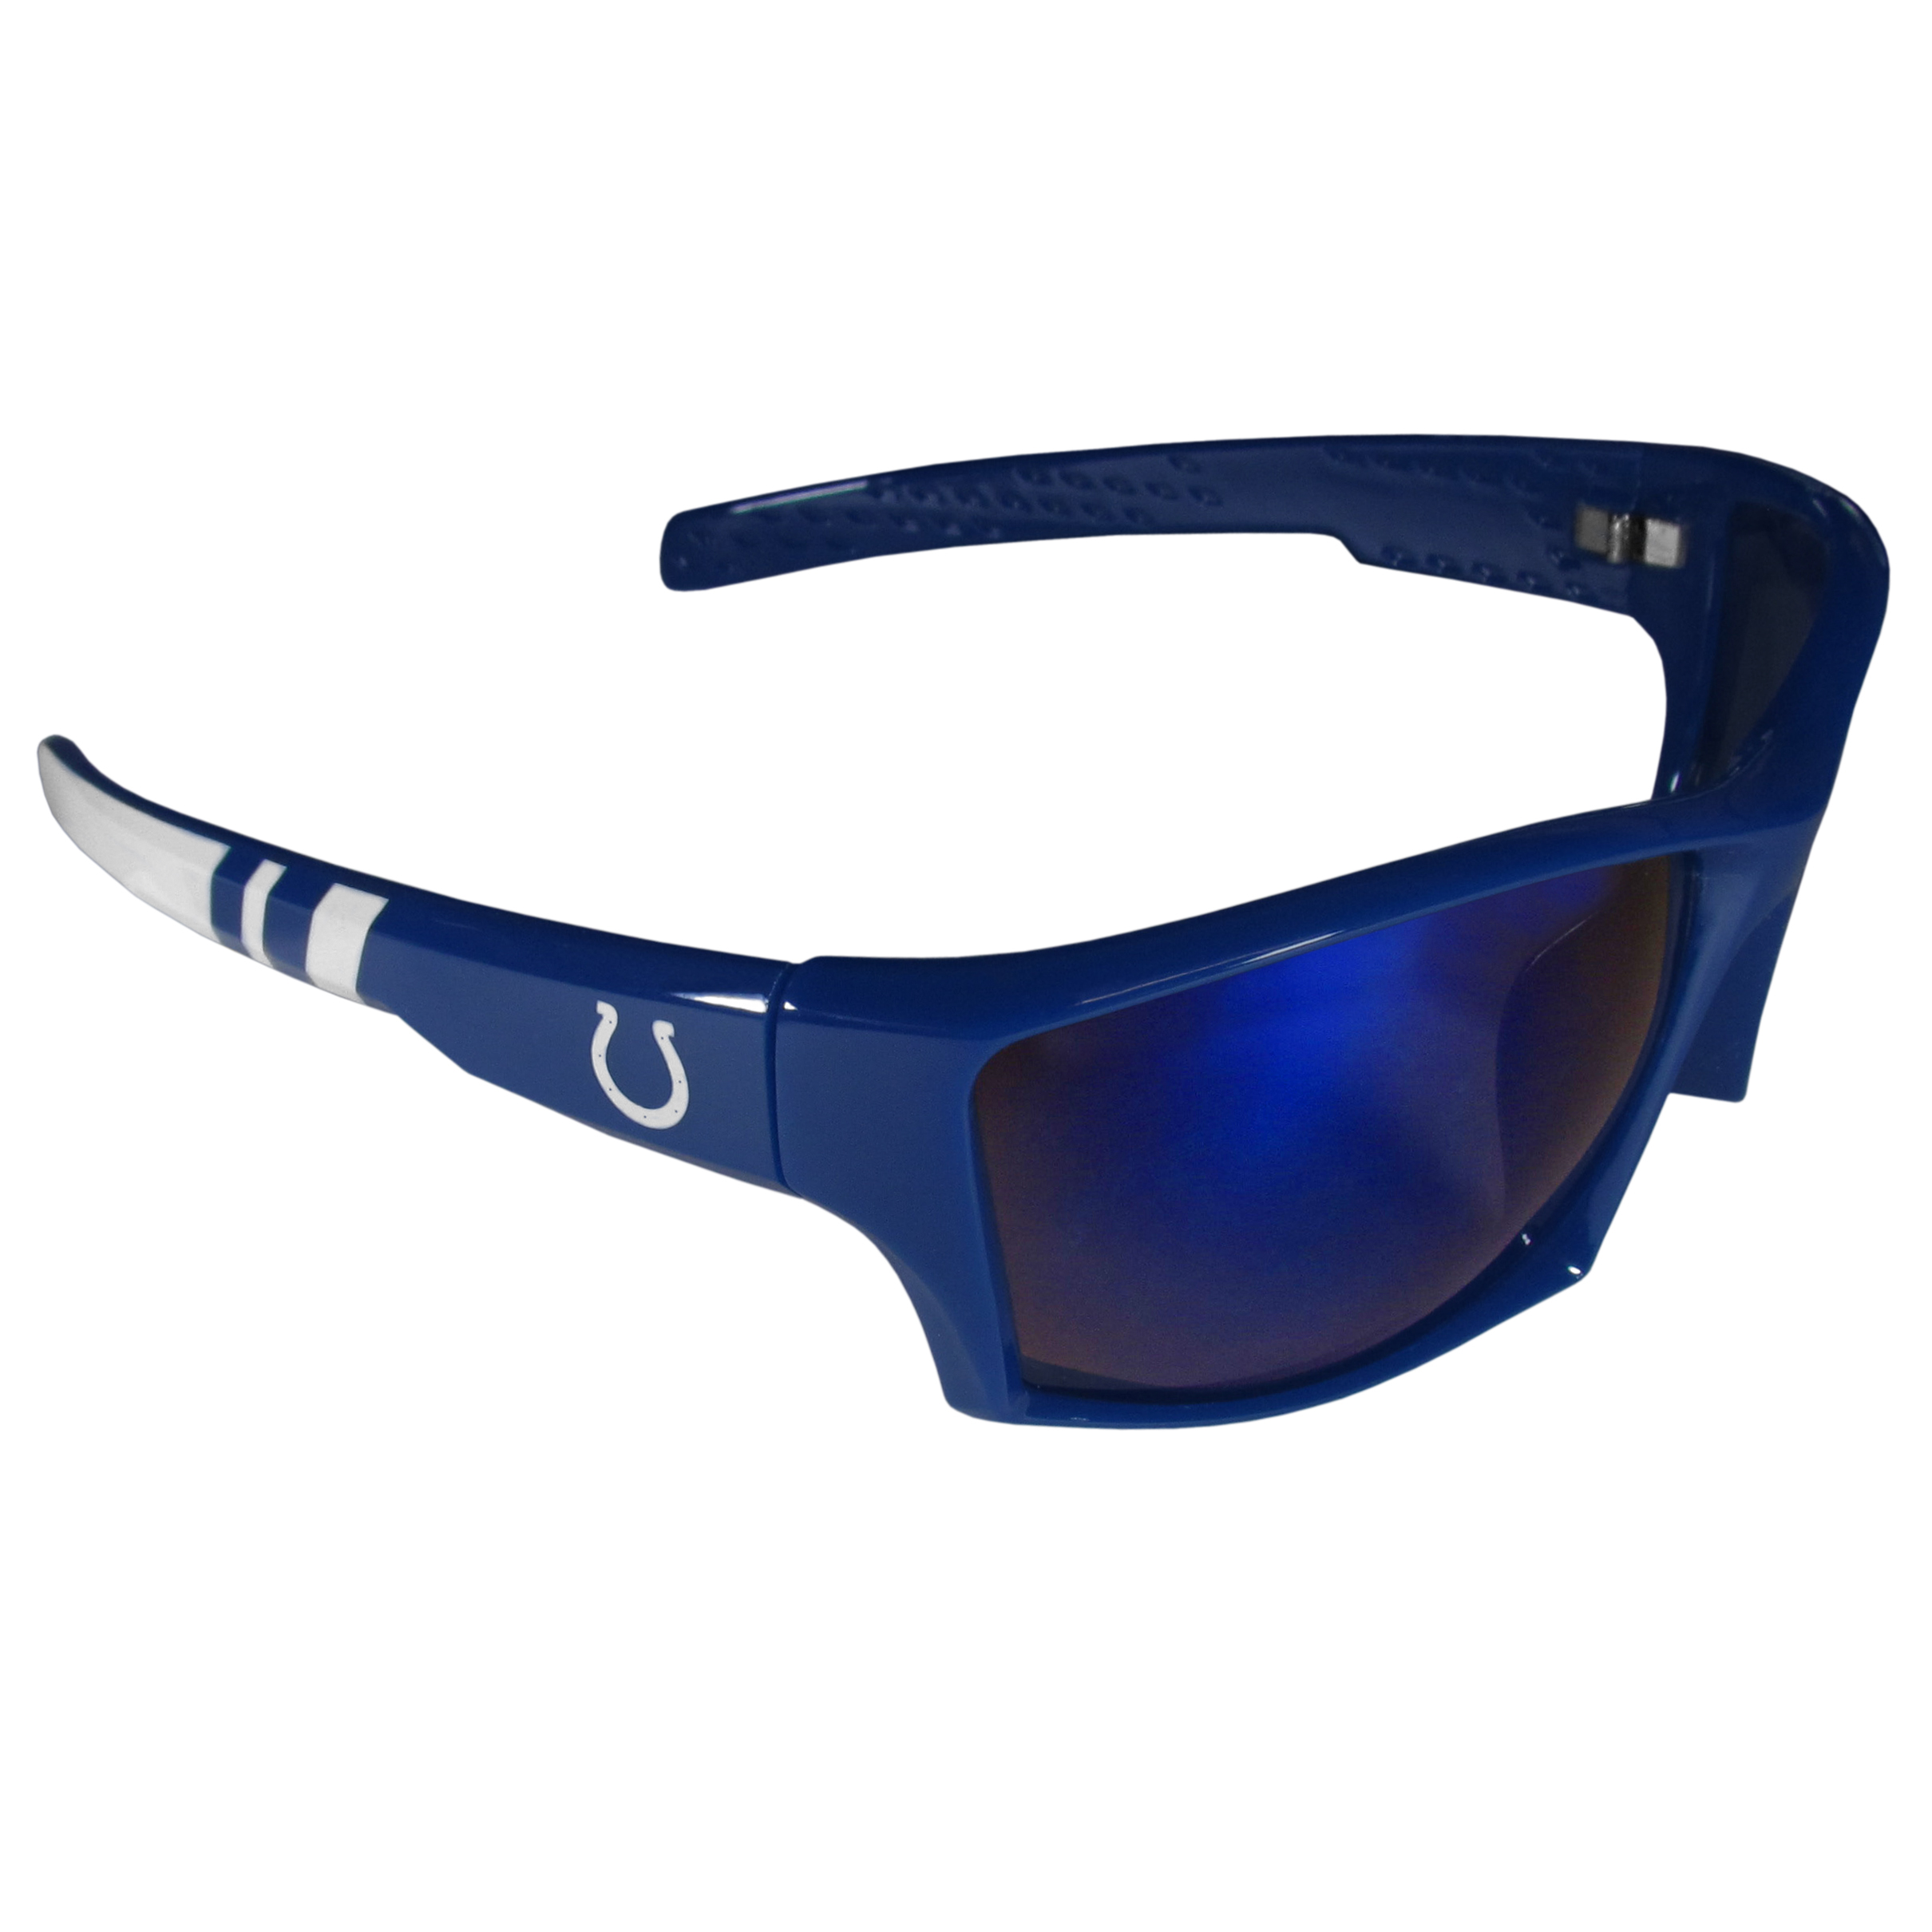 Indianapolis Colts Edge Wrap Sunglasses - Be an icon of edgy style while you're in the stadium cheering your Indianapolis Colts to victory with our polarized wrap sunglasses that feature 100% UVA/UVB rating for maximum UV protection. The light-weight frames are built to last with flex hinges for comfort and durability which make them perfect for driving or just lounging by the pool. The colorful rubber grips on the arms of these fashionable sunglasses make them perfect for someone with an active lifestyle. Whether you are hiking, fishing, boating, running on the beach, golfing or playing your favorite sport these designer frames will set you apart. Our edge wrap sunglasses are true quality eyewear at an affordable price. The wrap style frames come with team colored stripes and team logos so you can show off your die-hard team pride while protecting your eyes from those bright sun rays.